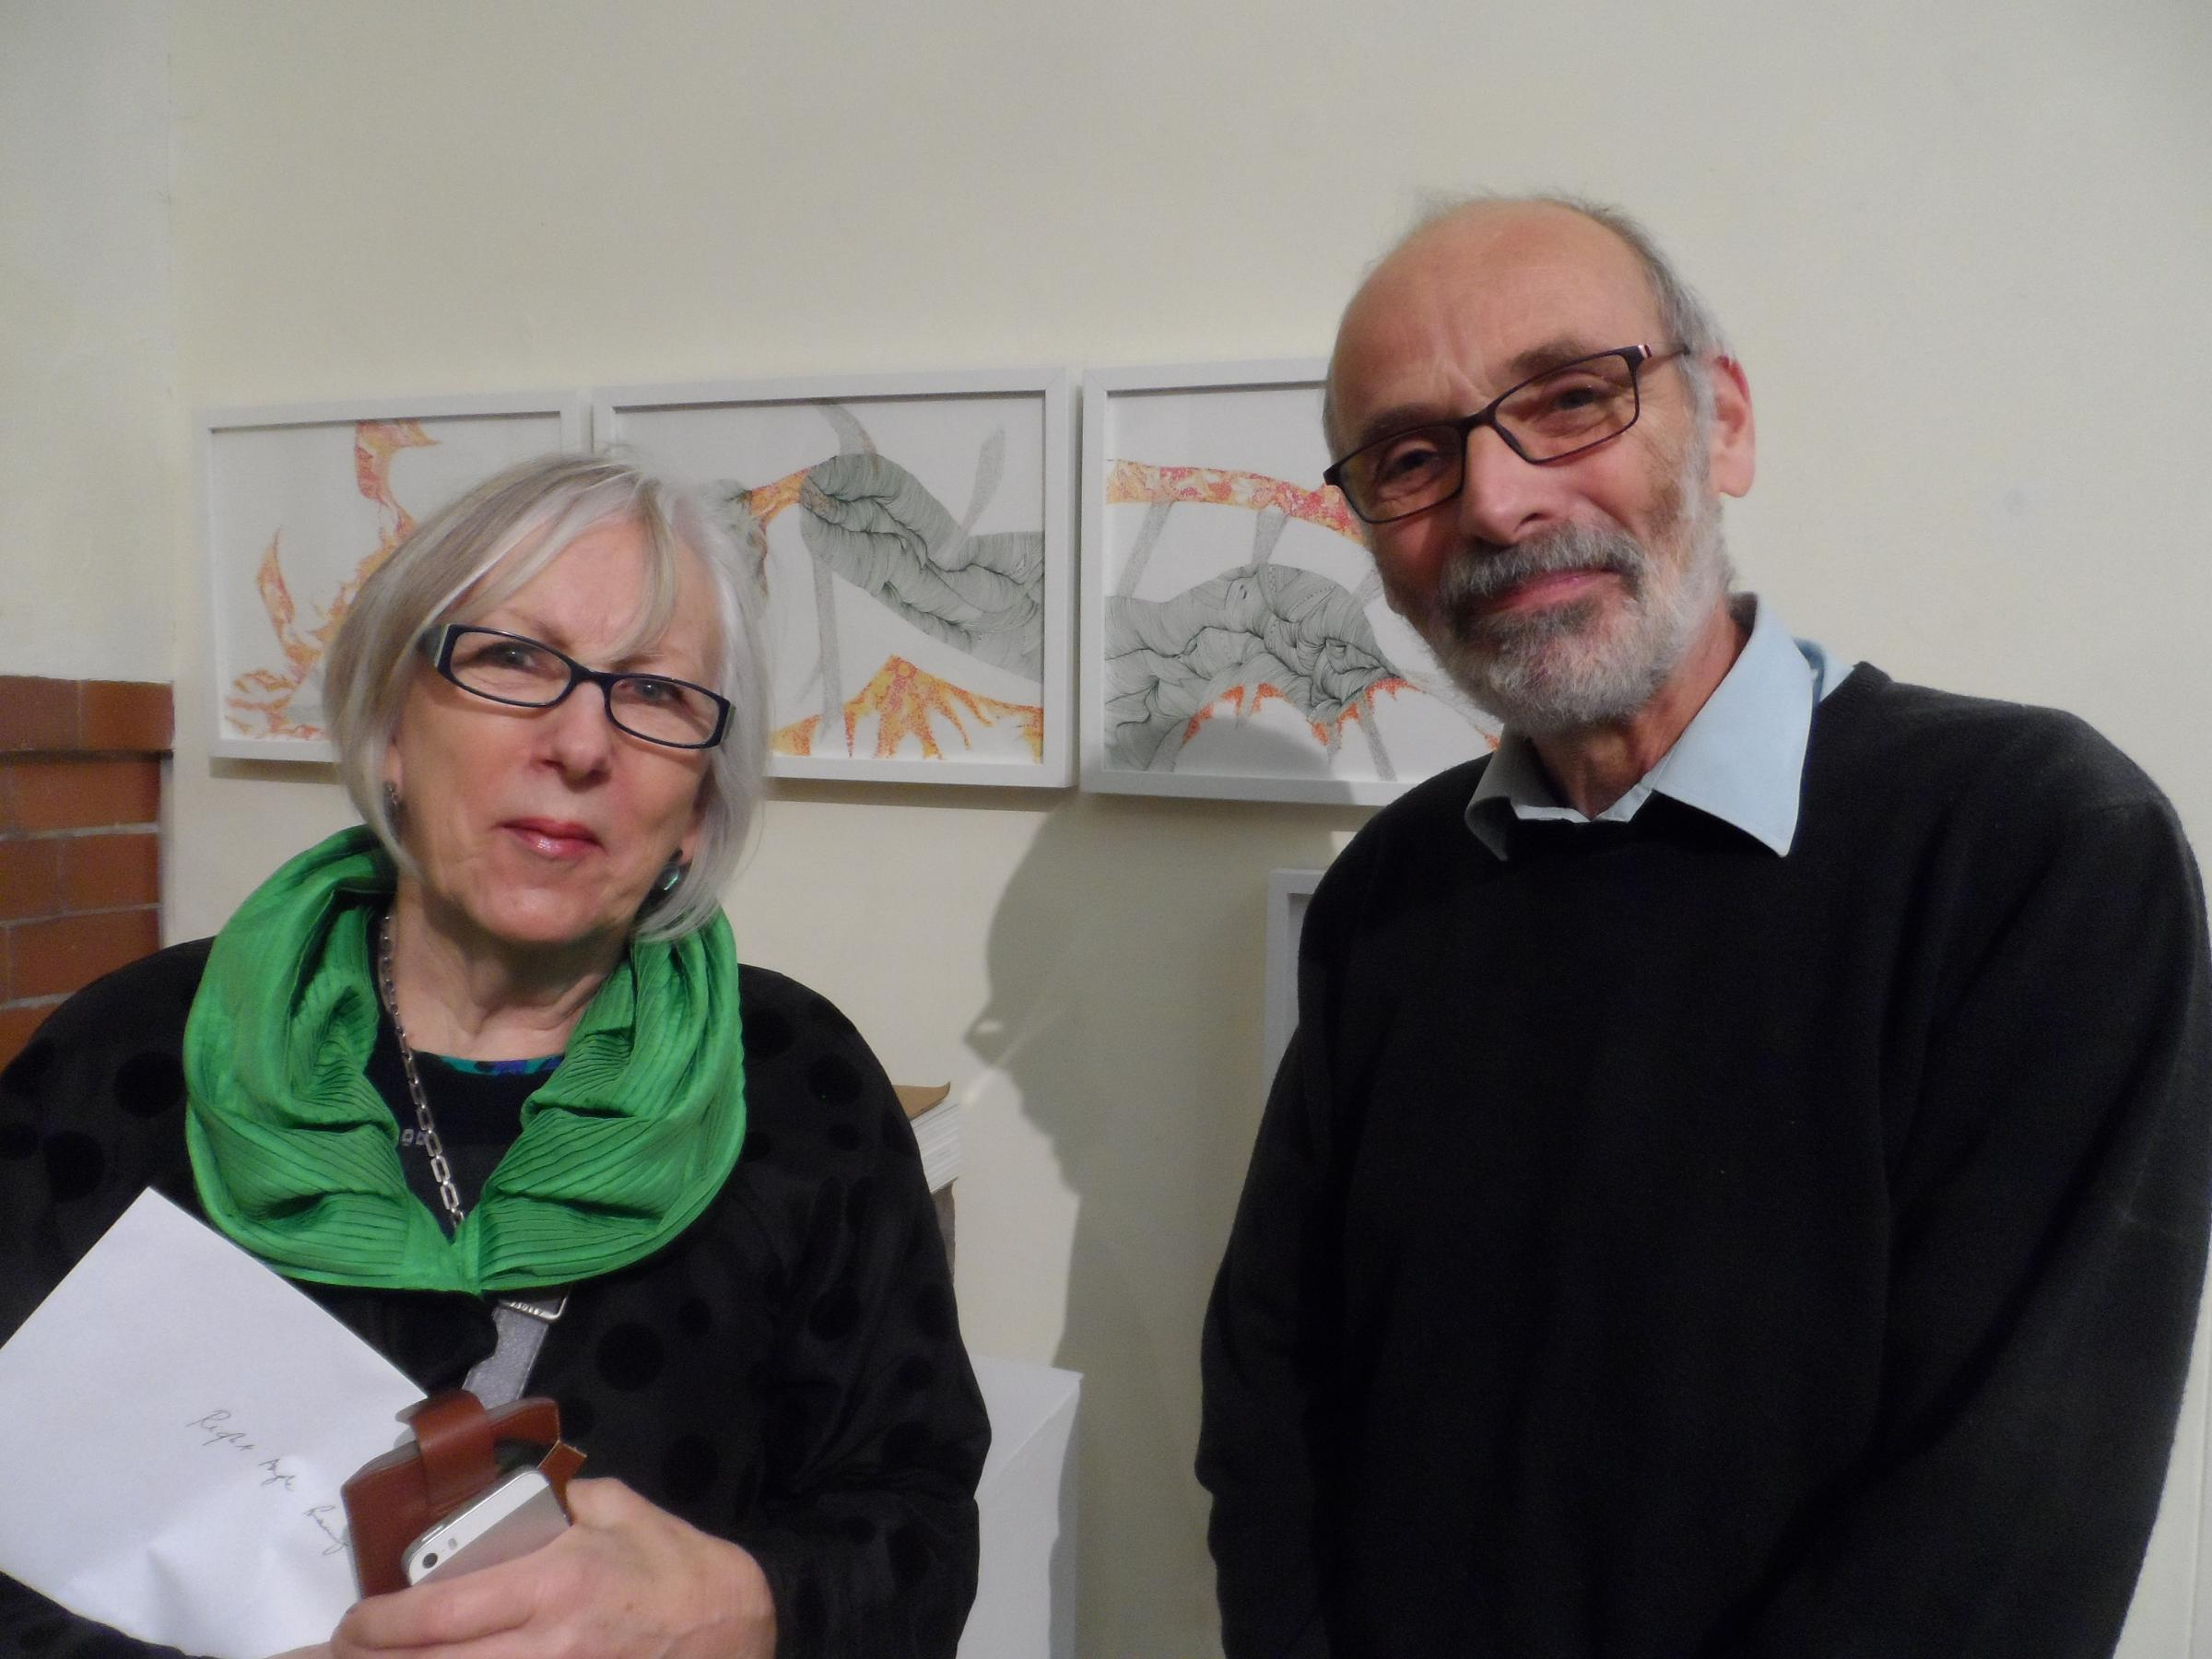 Local artist Anne Martin Pyne with exhibition sponsor Steve Hible